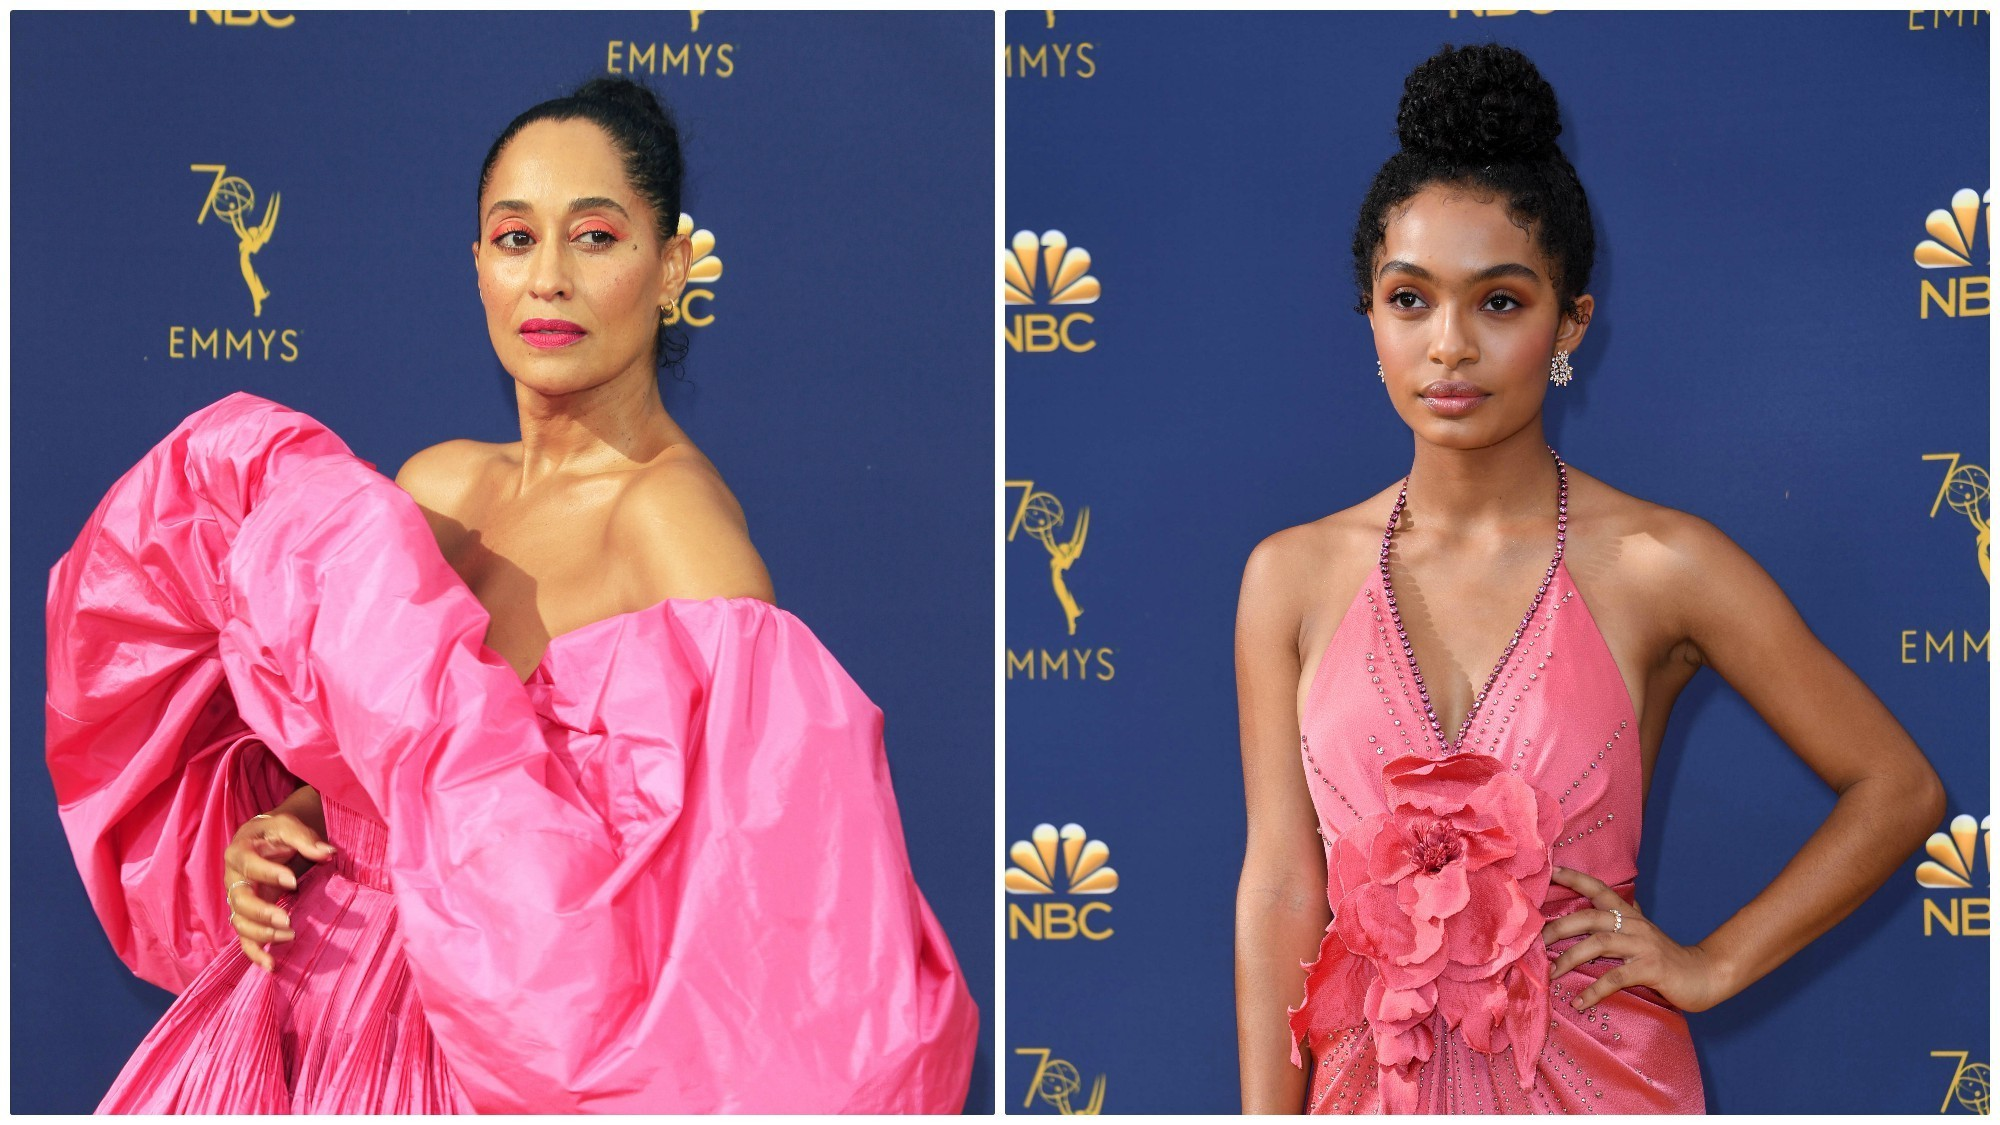 Emmys fashion trends: TV mom and daughter Tracee Ellis Ross, Yara Shahidi go bold in shades of pink